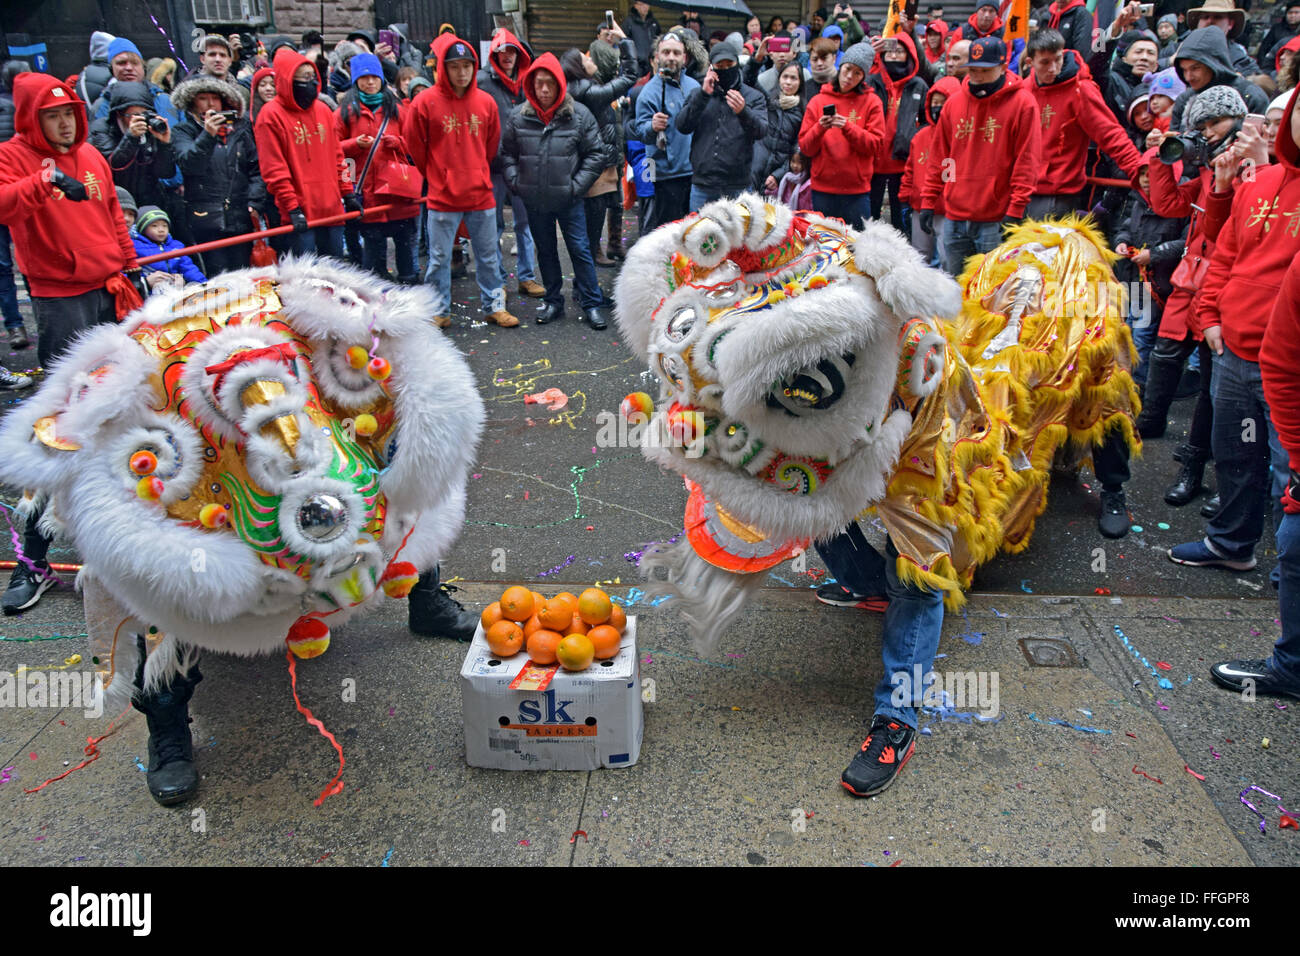 Dragon dancers dancing for prosperity on Doyers Street in NYC Chinatown at the 2016 Lunar New Year's Day Parade. - Stock Image